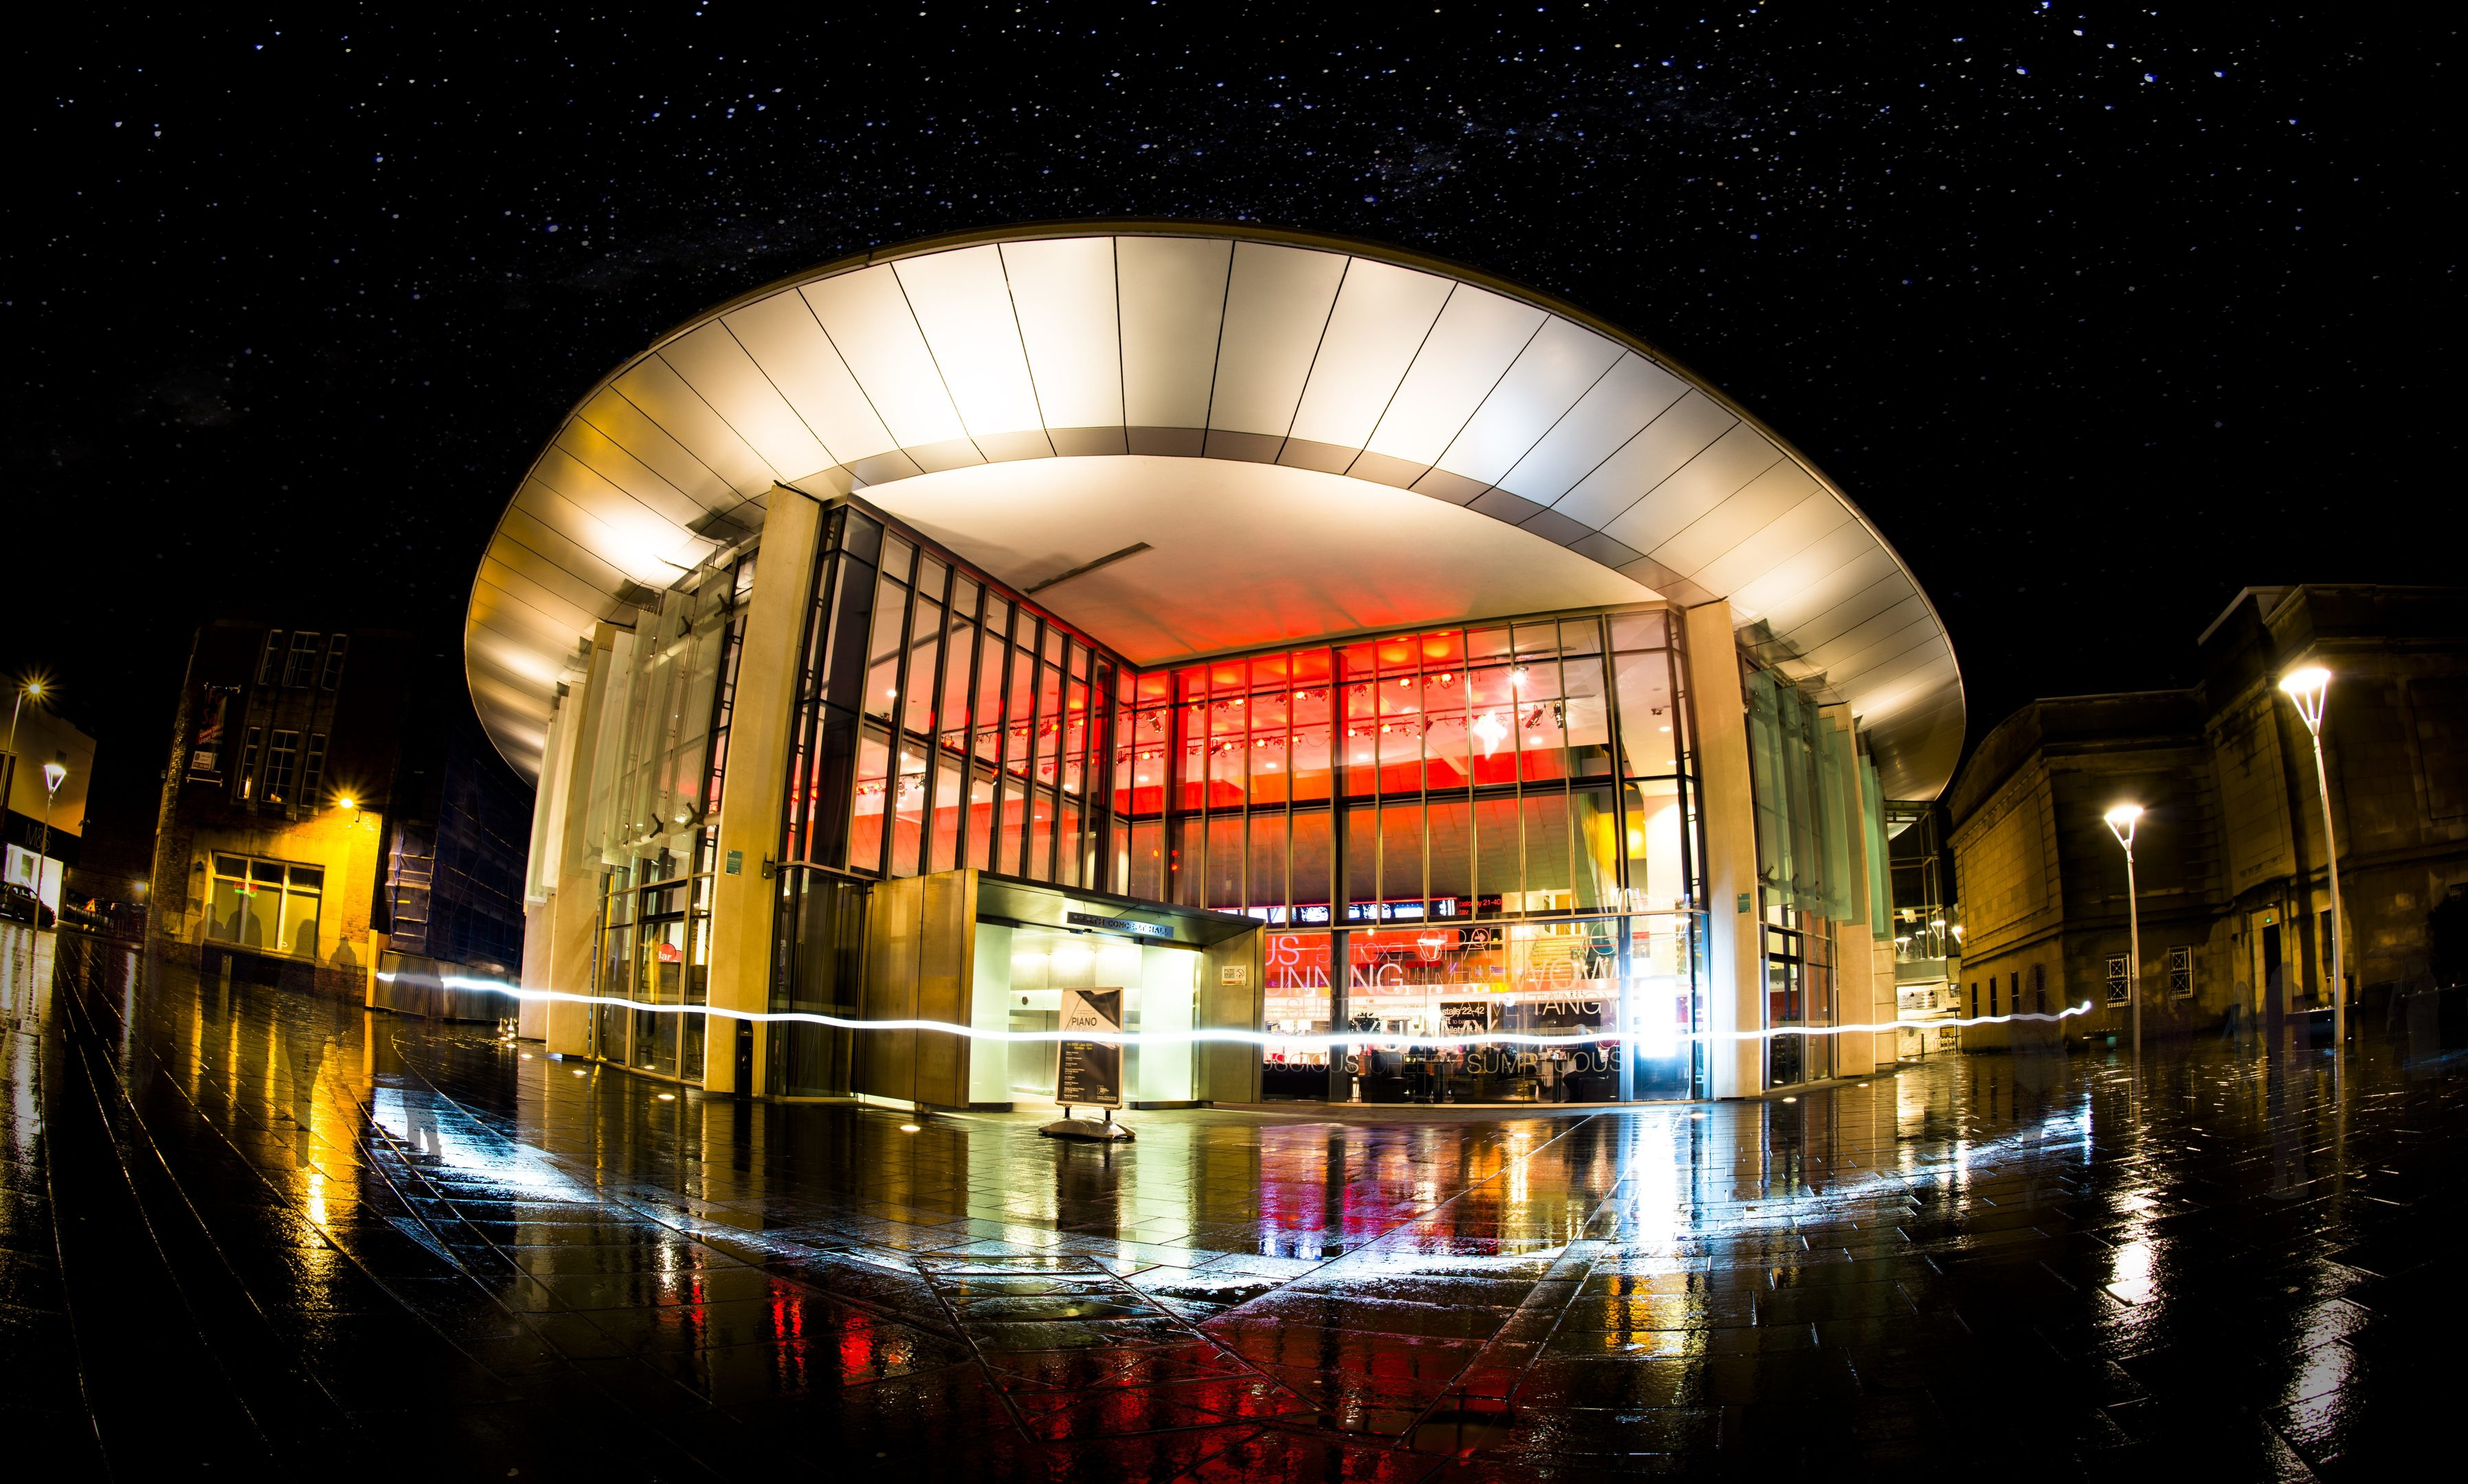 Perth Concert Hall at night